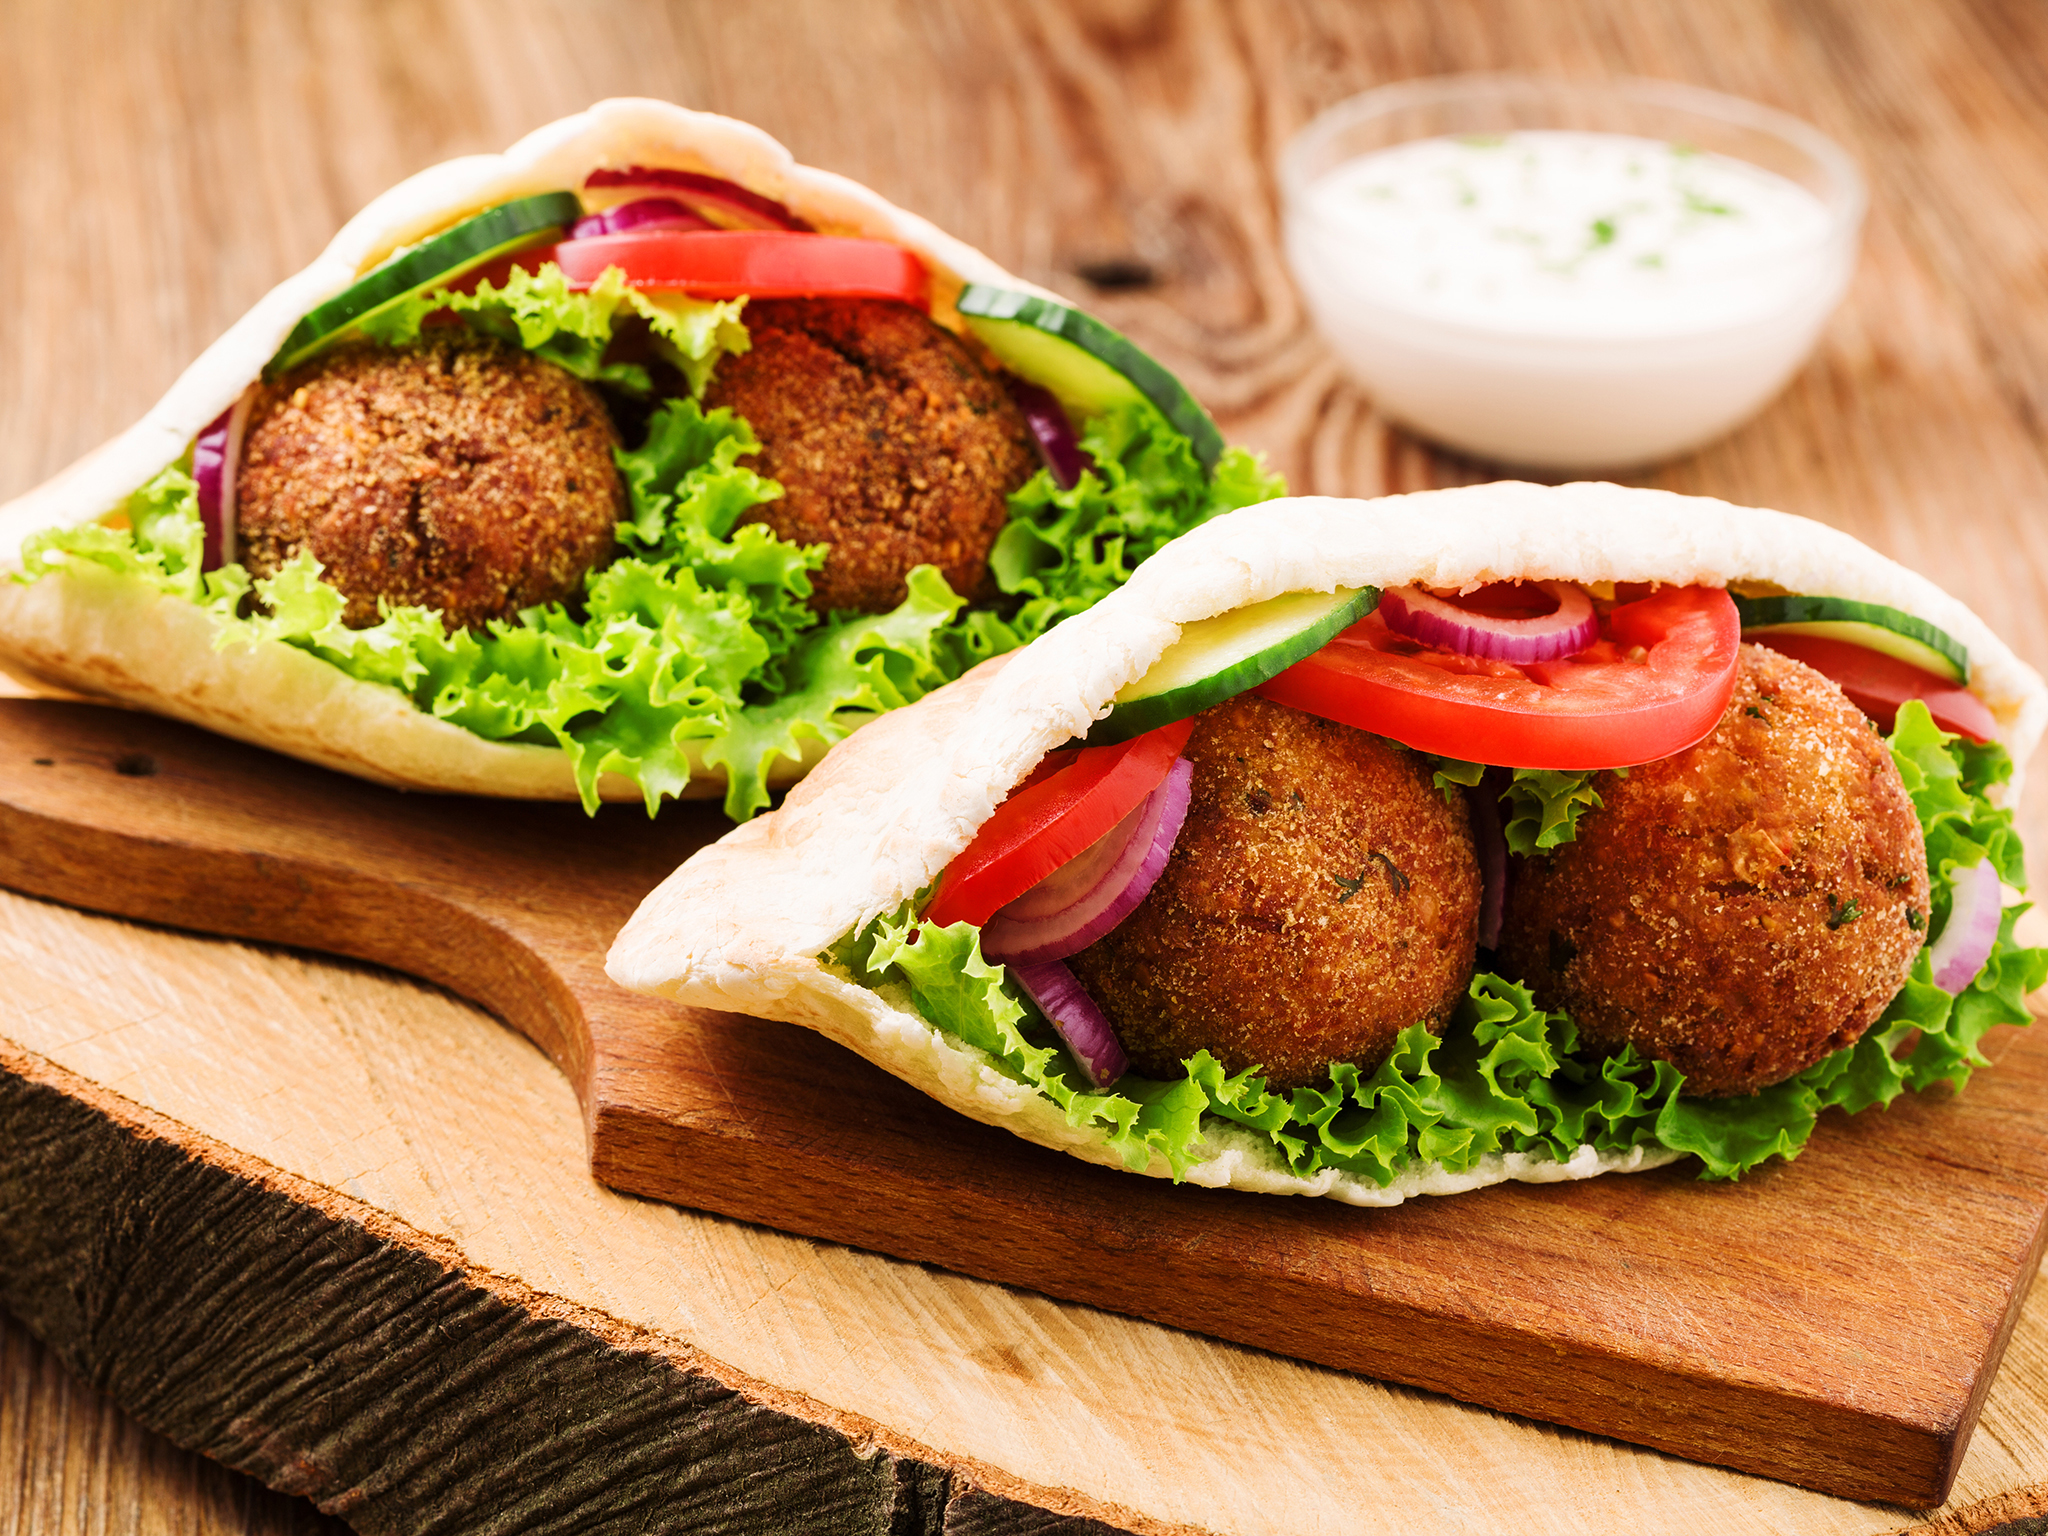 Falafel - paired with sabich makes tasty street food in Tel Aviv